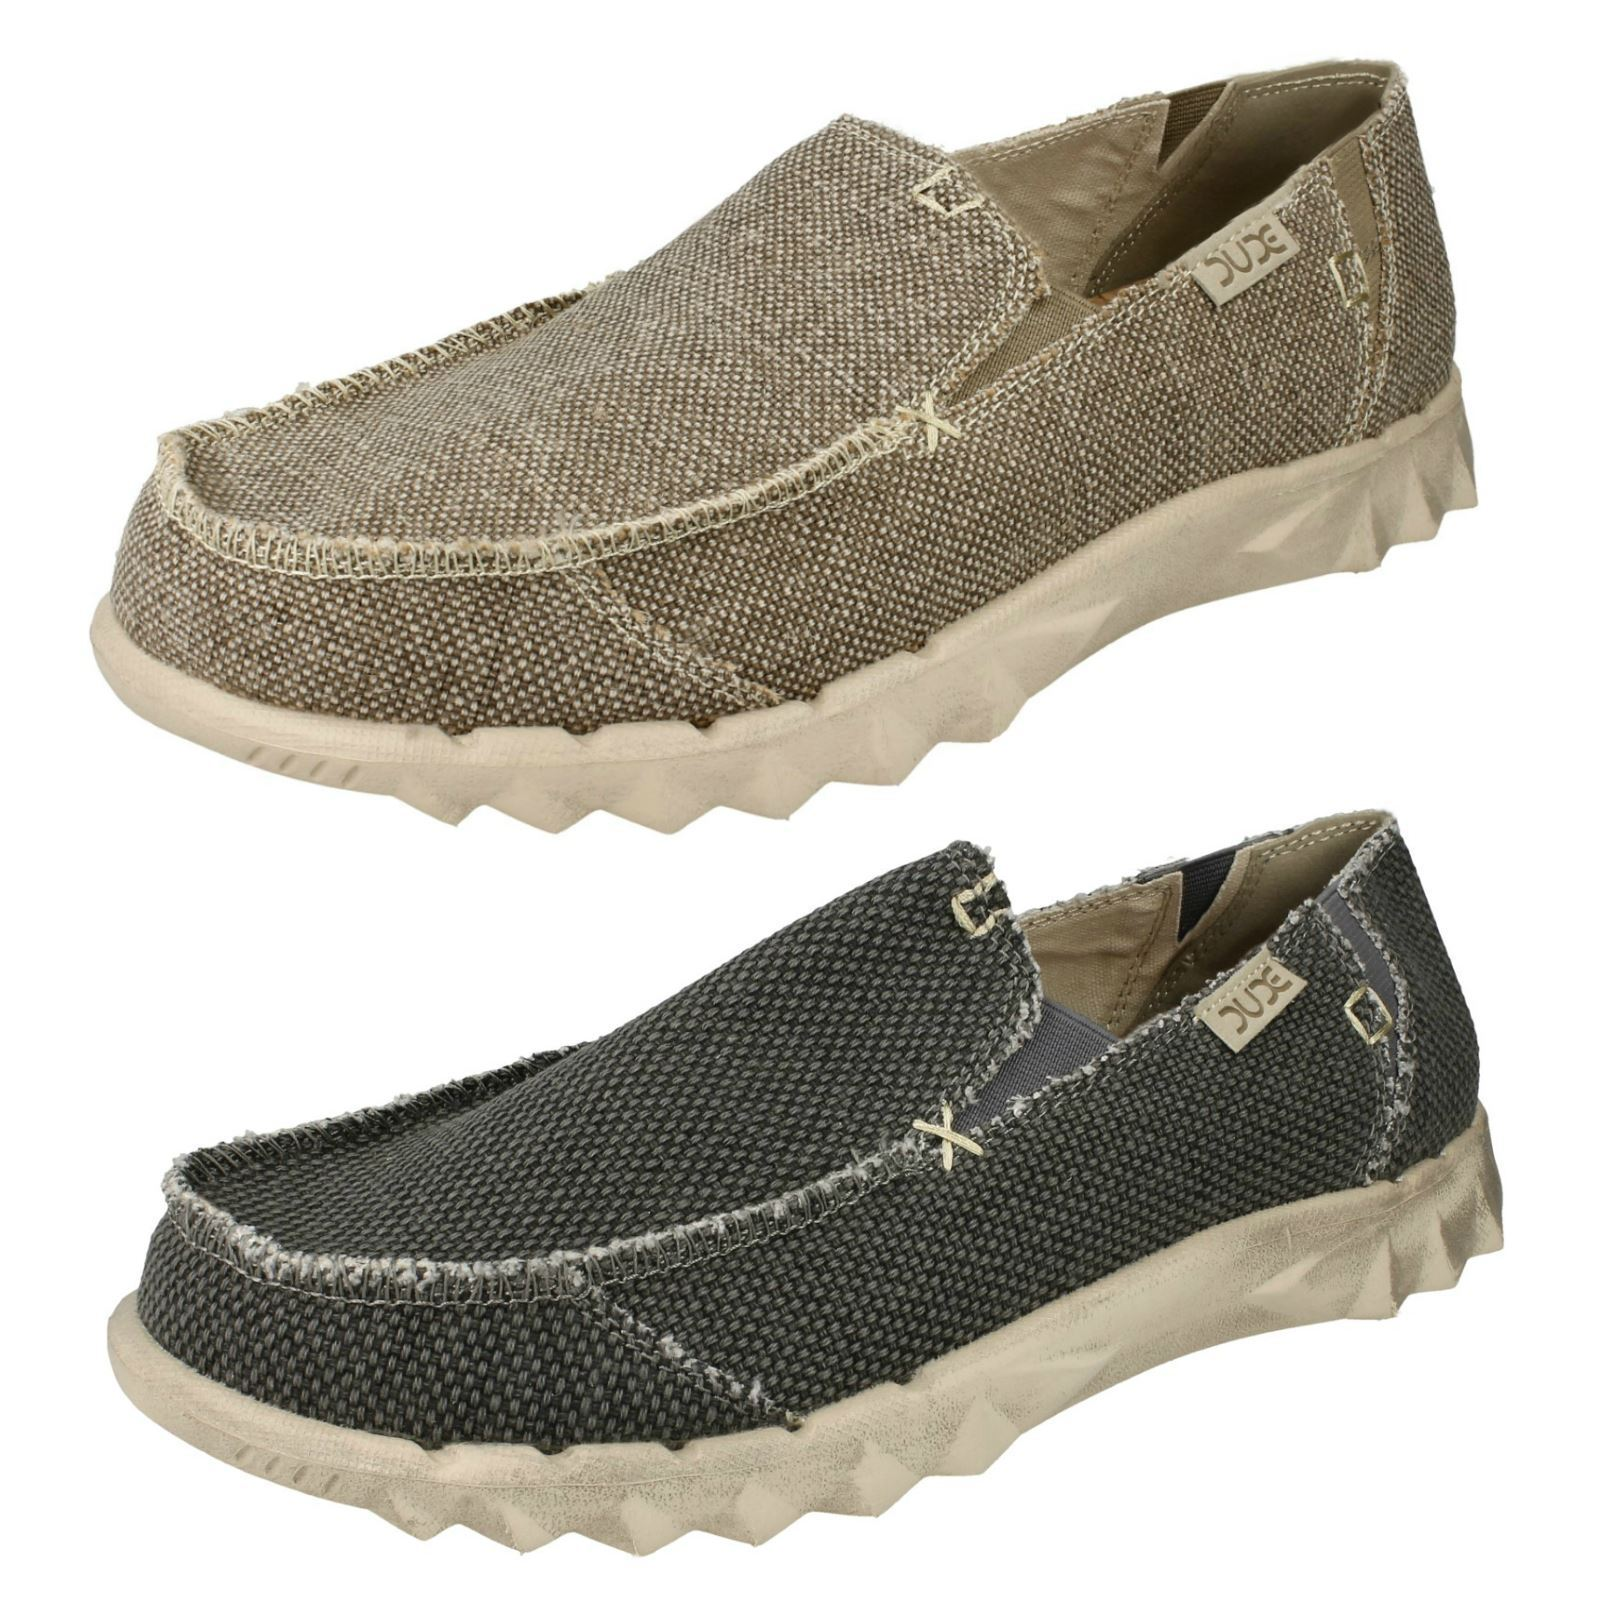 Hombre Hey Dude - Casual Zapatos - Dude Farty Braided 38a74a